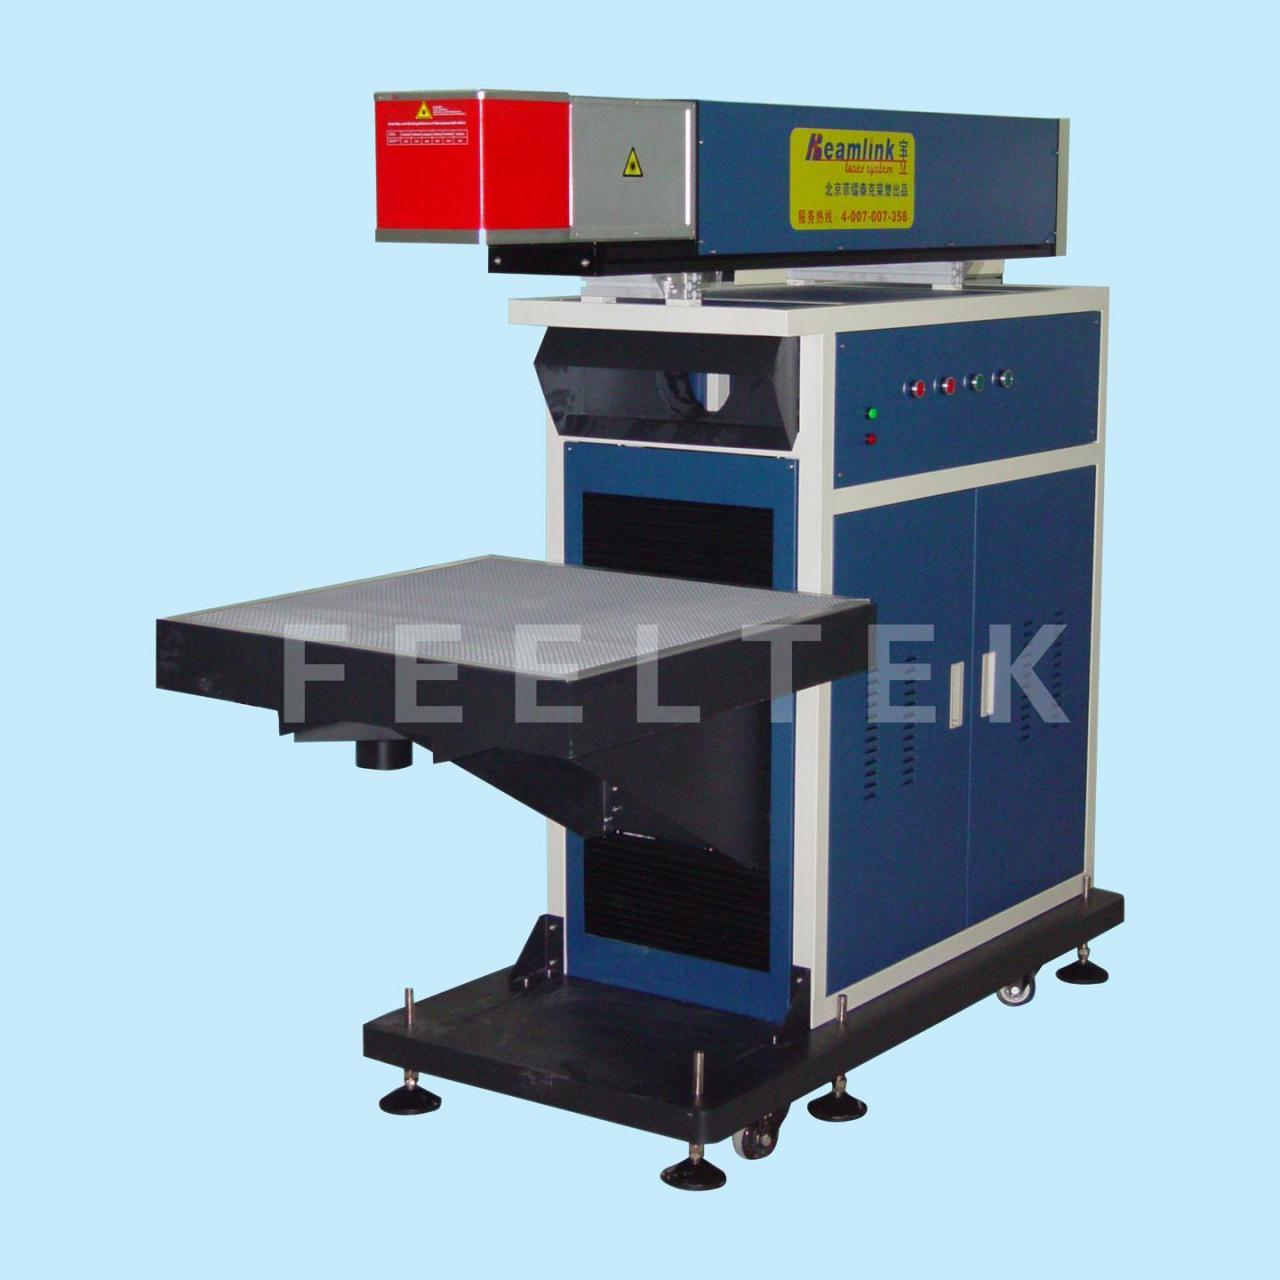 SMK series marking machine>E3 series marking machine